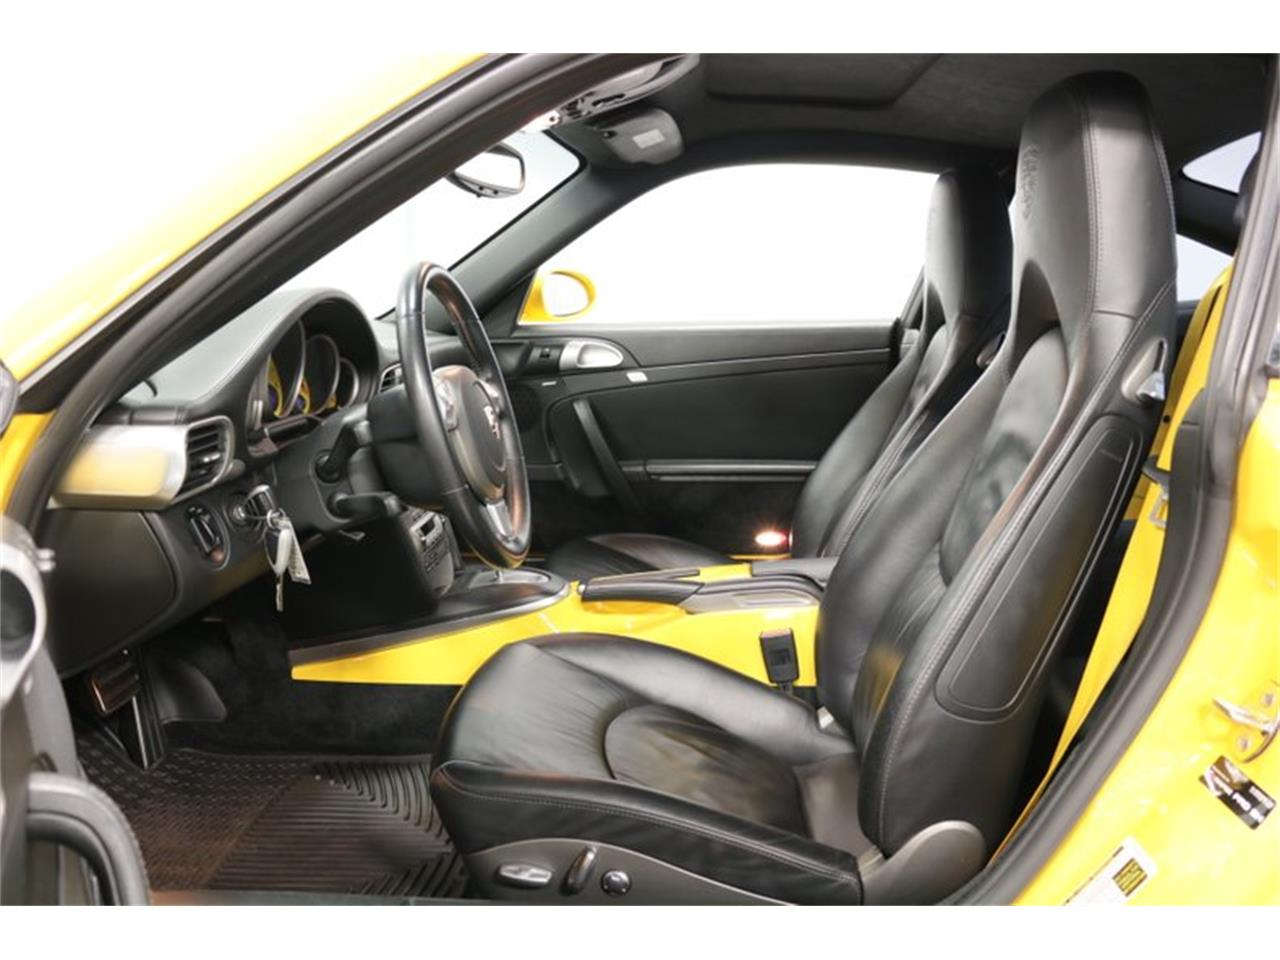 2007 Porsche 911 for sale in Ft Worth, TX – photo 4